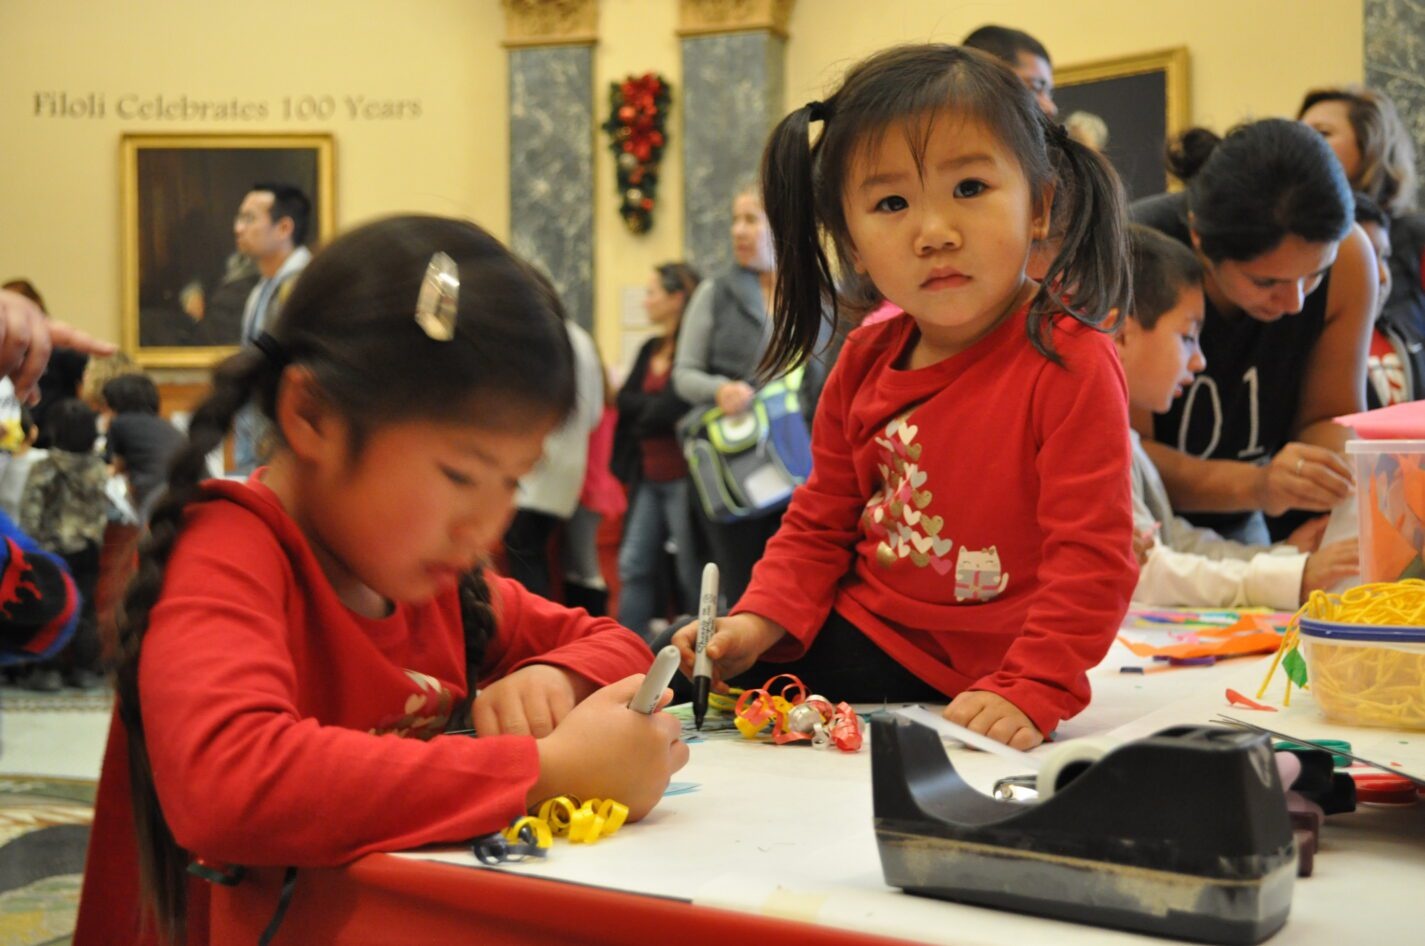 Kids creating a holiday craft at the San Mateo County History Museum